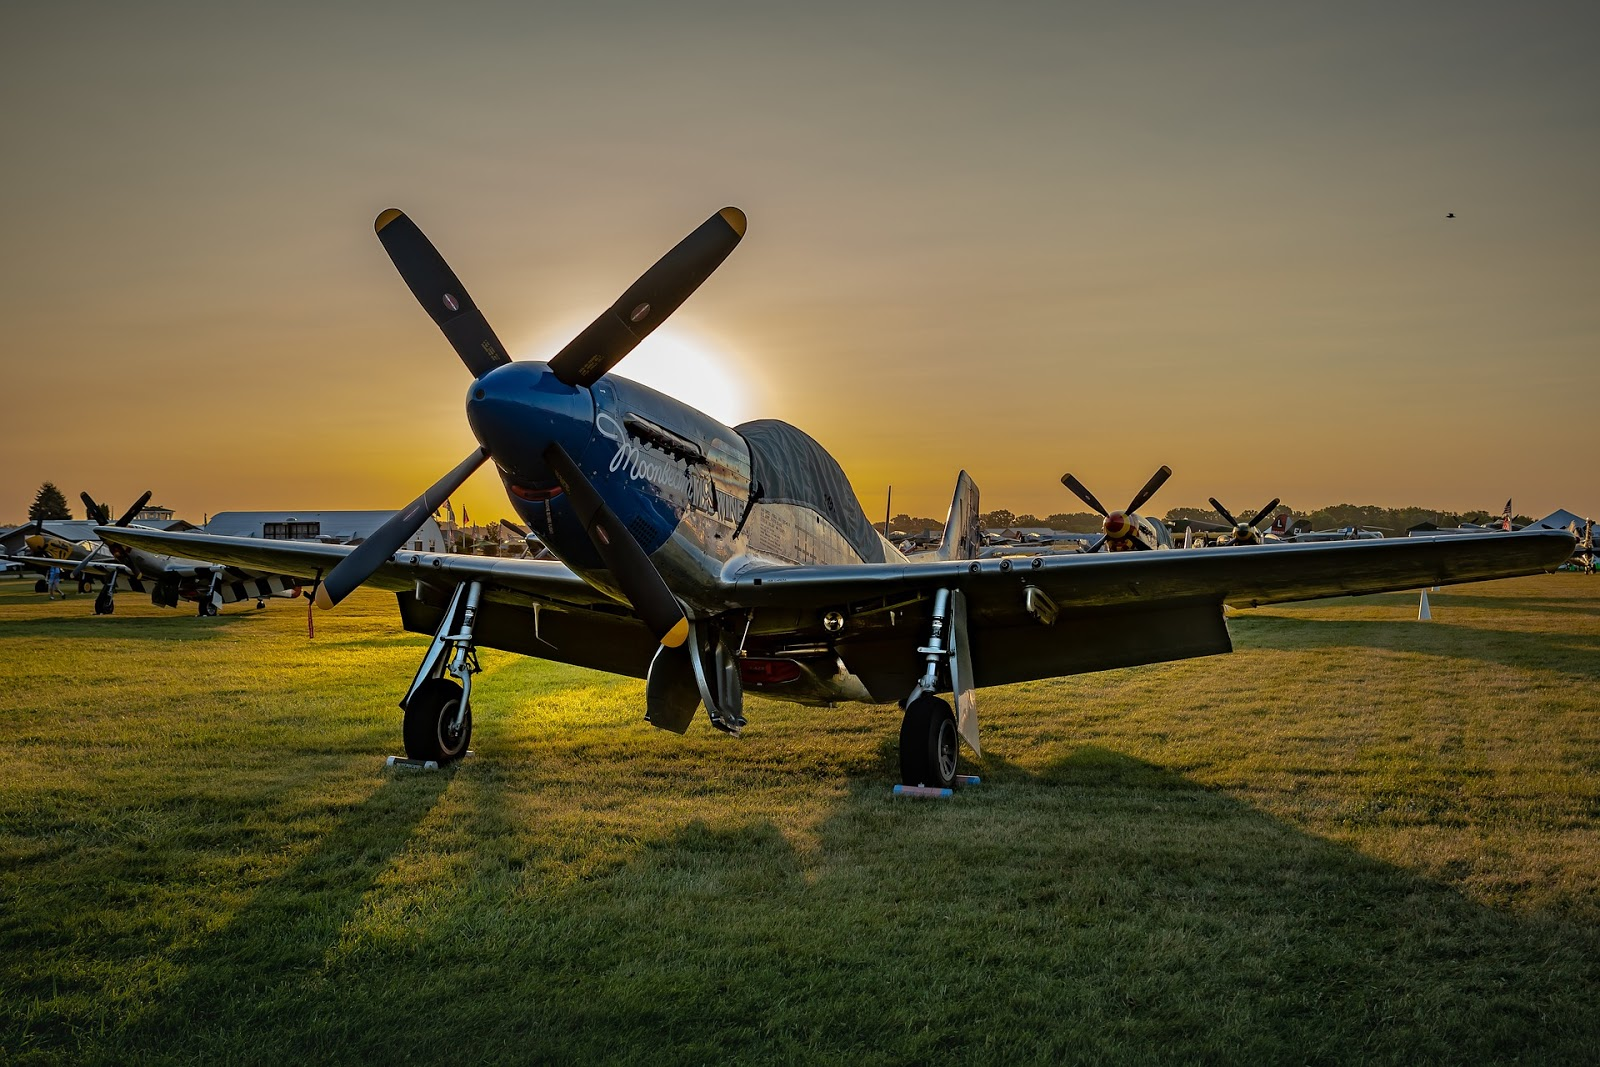 world war 2 fighter plane stands on a grass runway with sunset in background for blog post about air force war movies